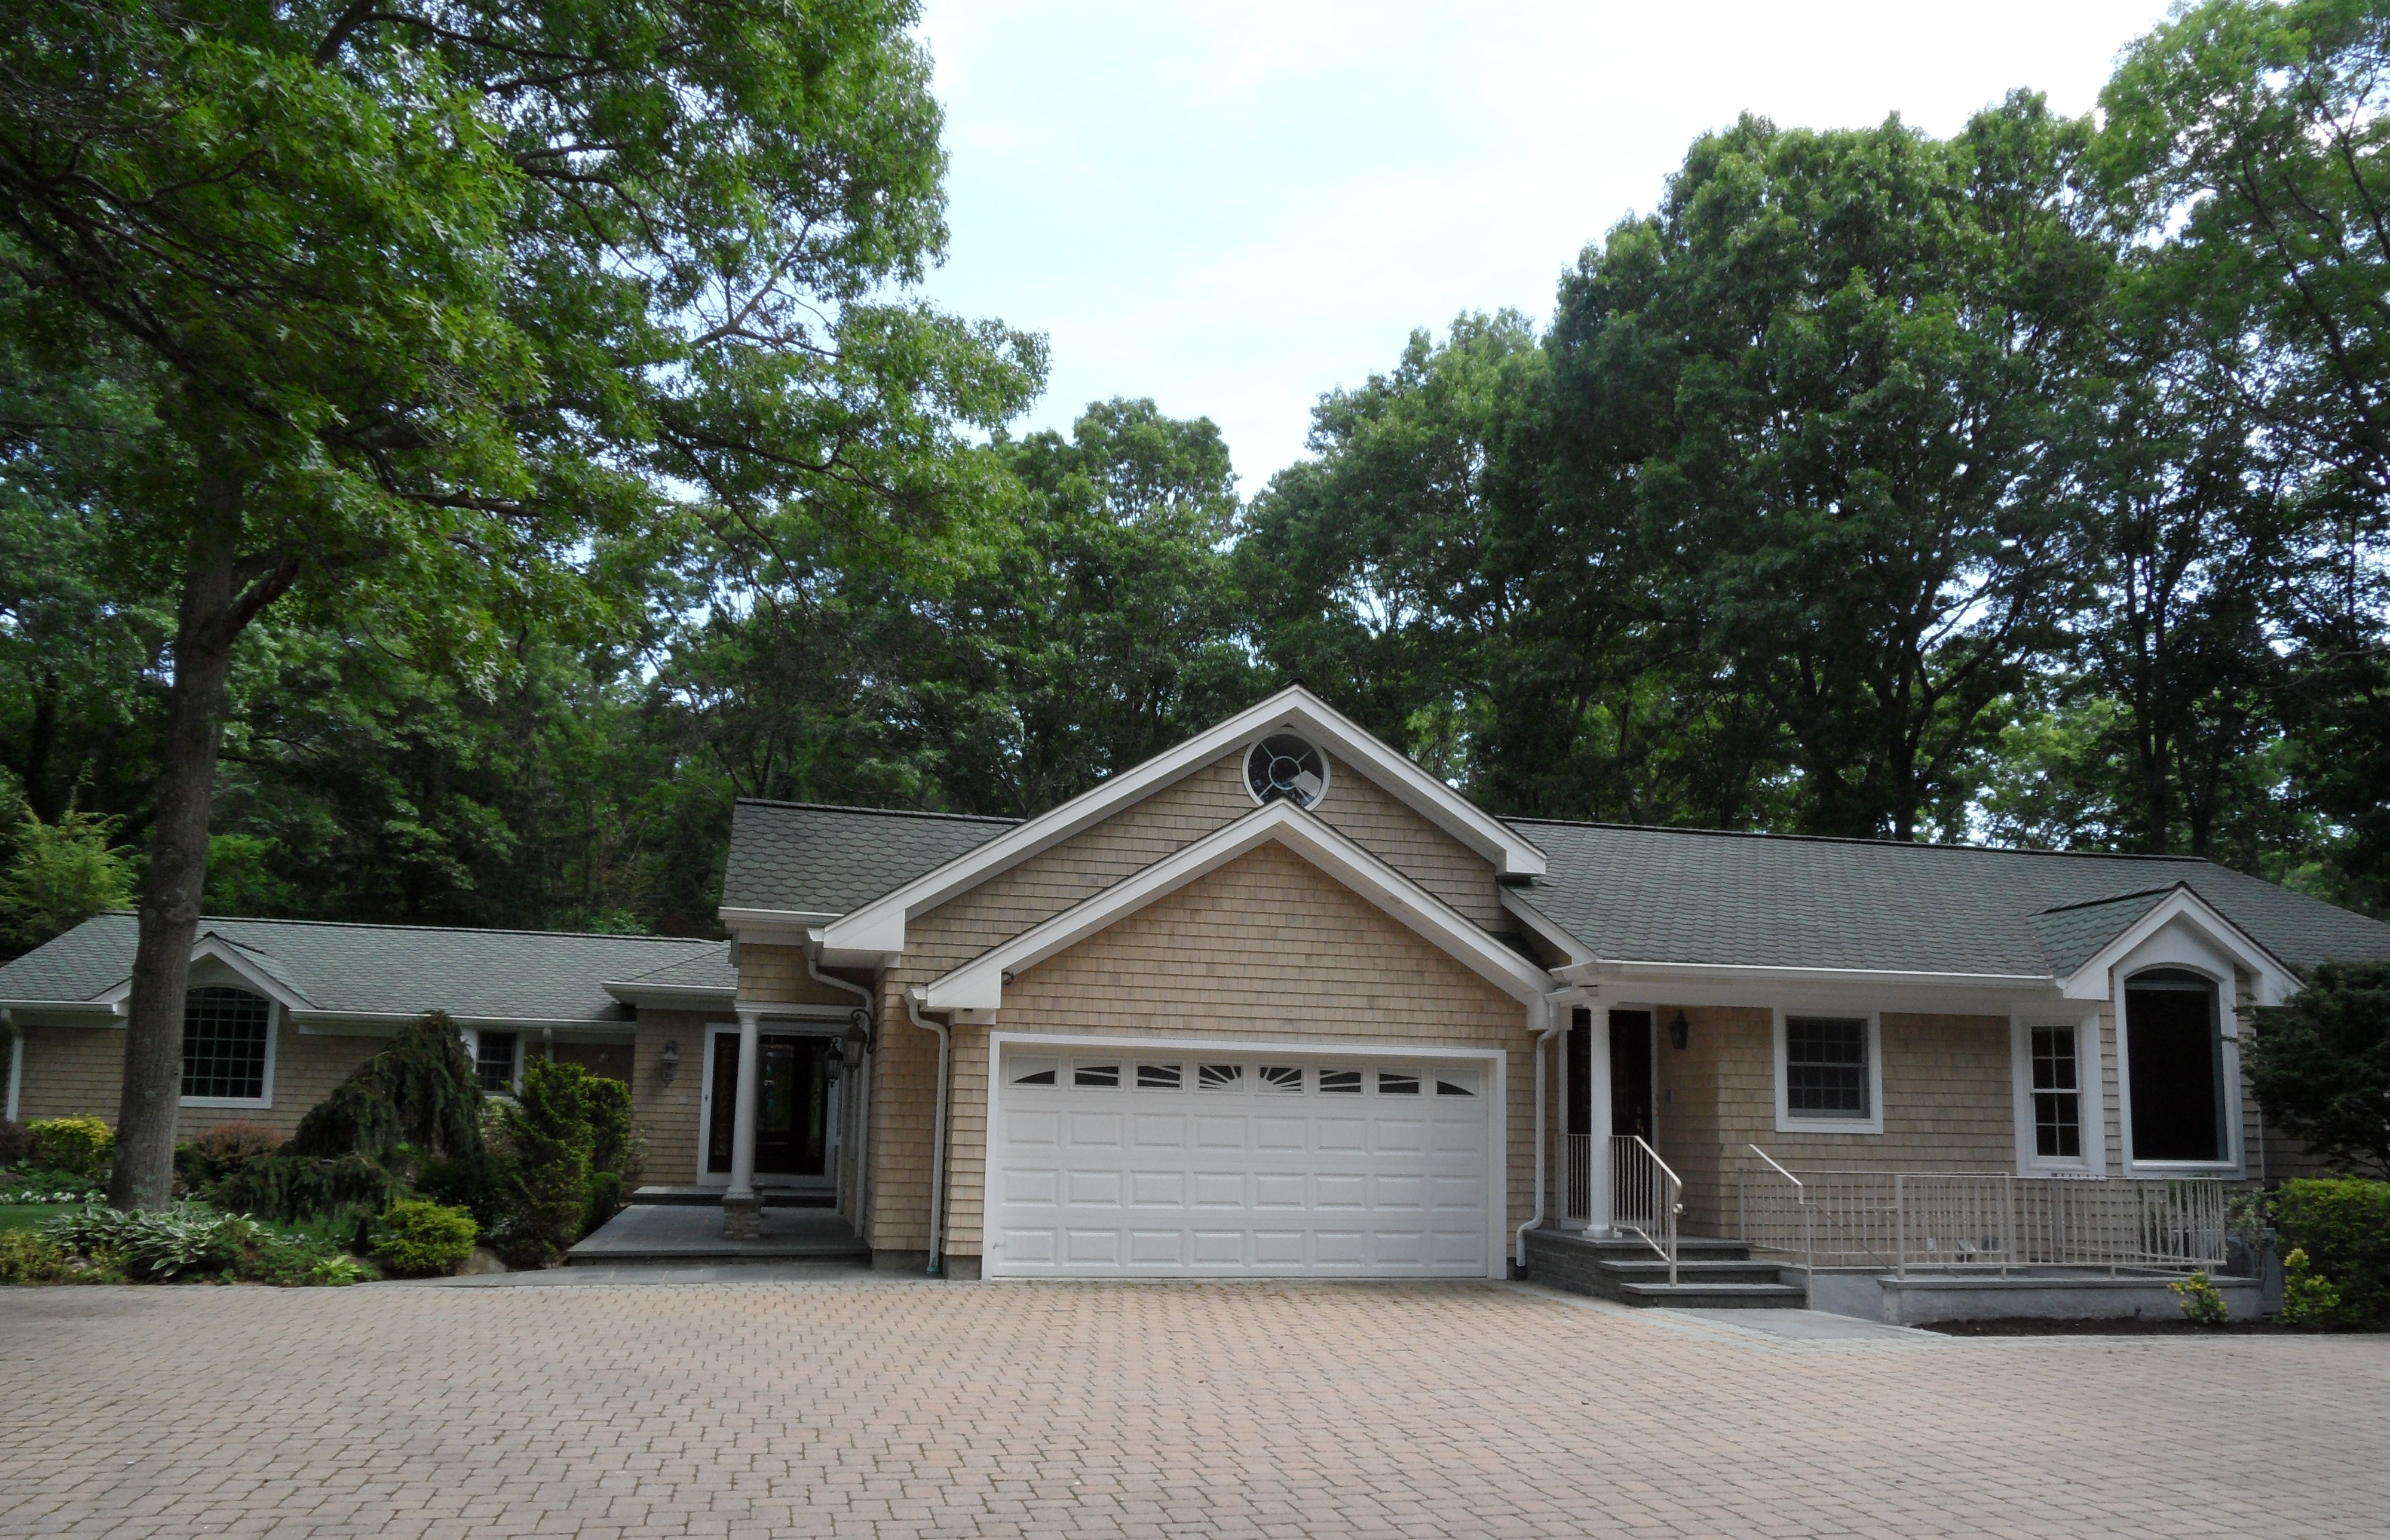 Single Family Home for Sale at Exp Ranch 328 Wolf Hill Rd Dix Hills, New York 11746 United States